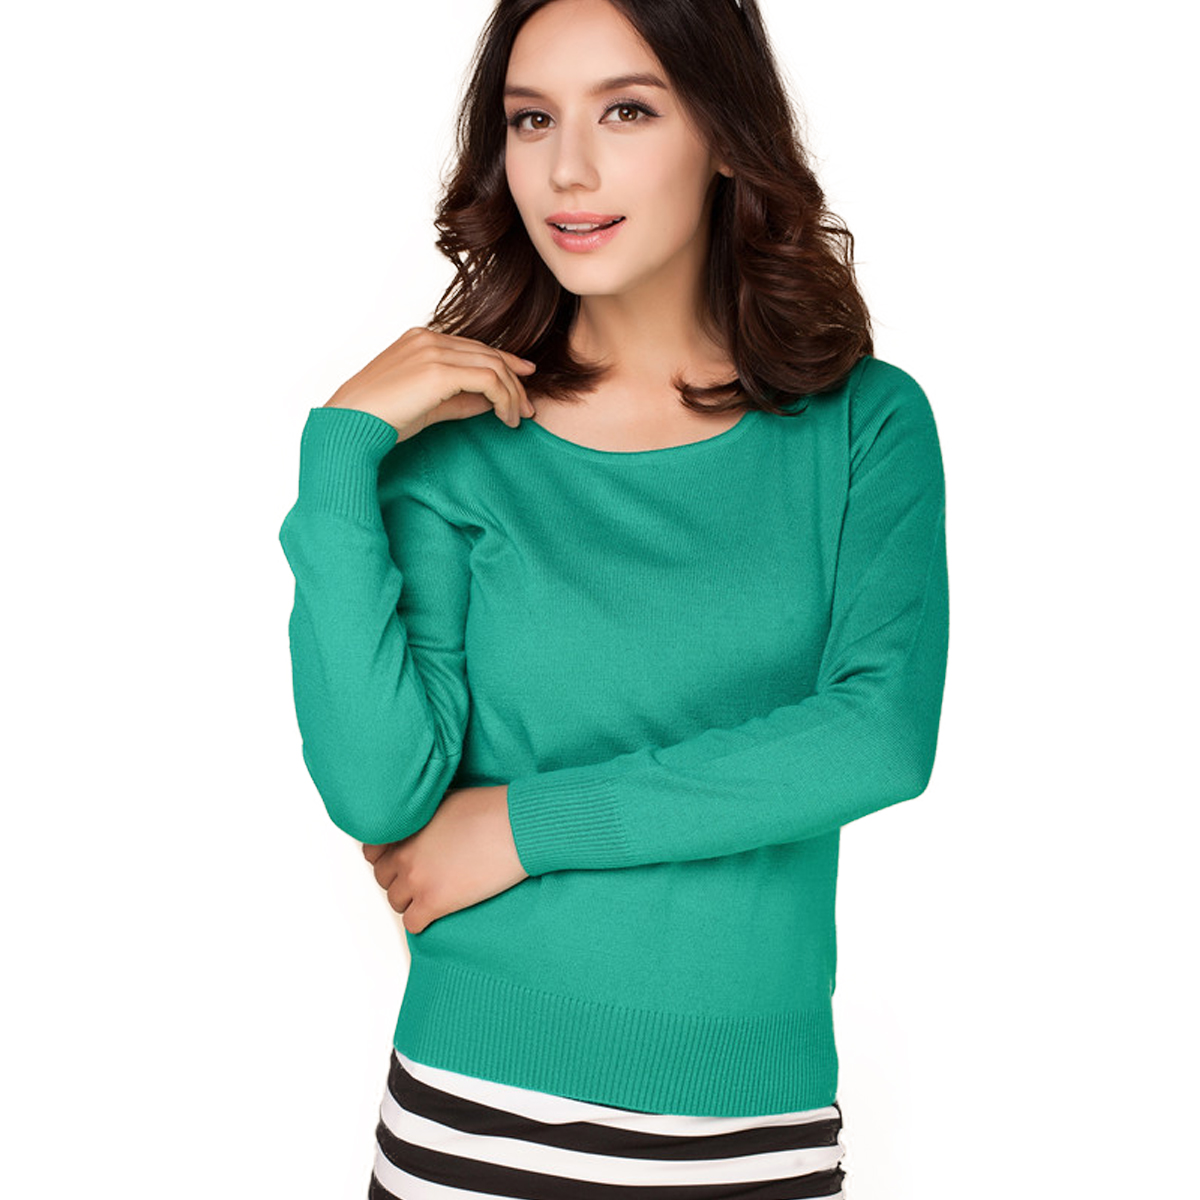 Aliexpresscom  Buy 2016 Cashmere Sweater Women Sweaters And Pullovers Women Fashion -1826